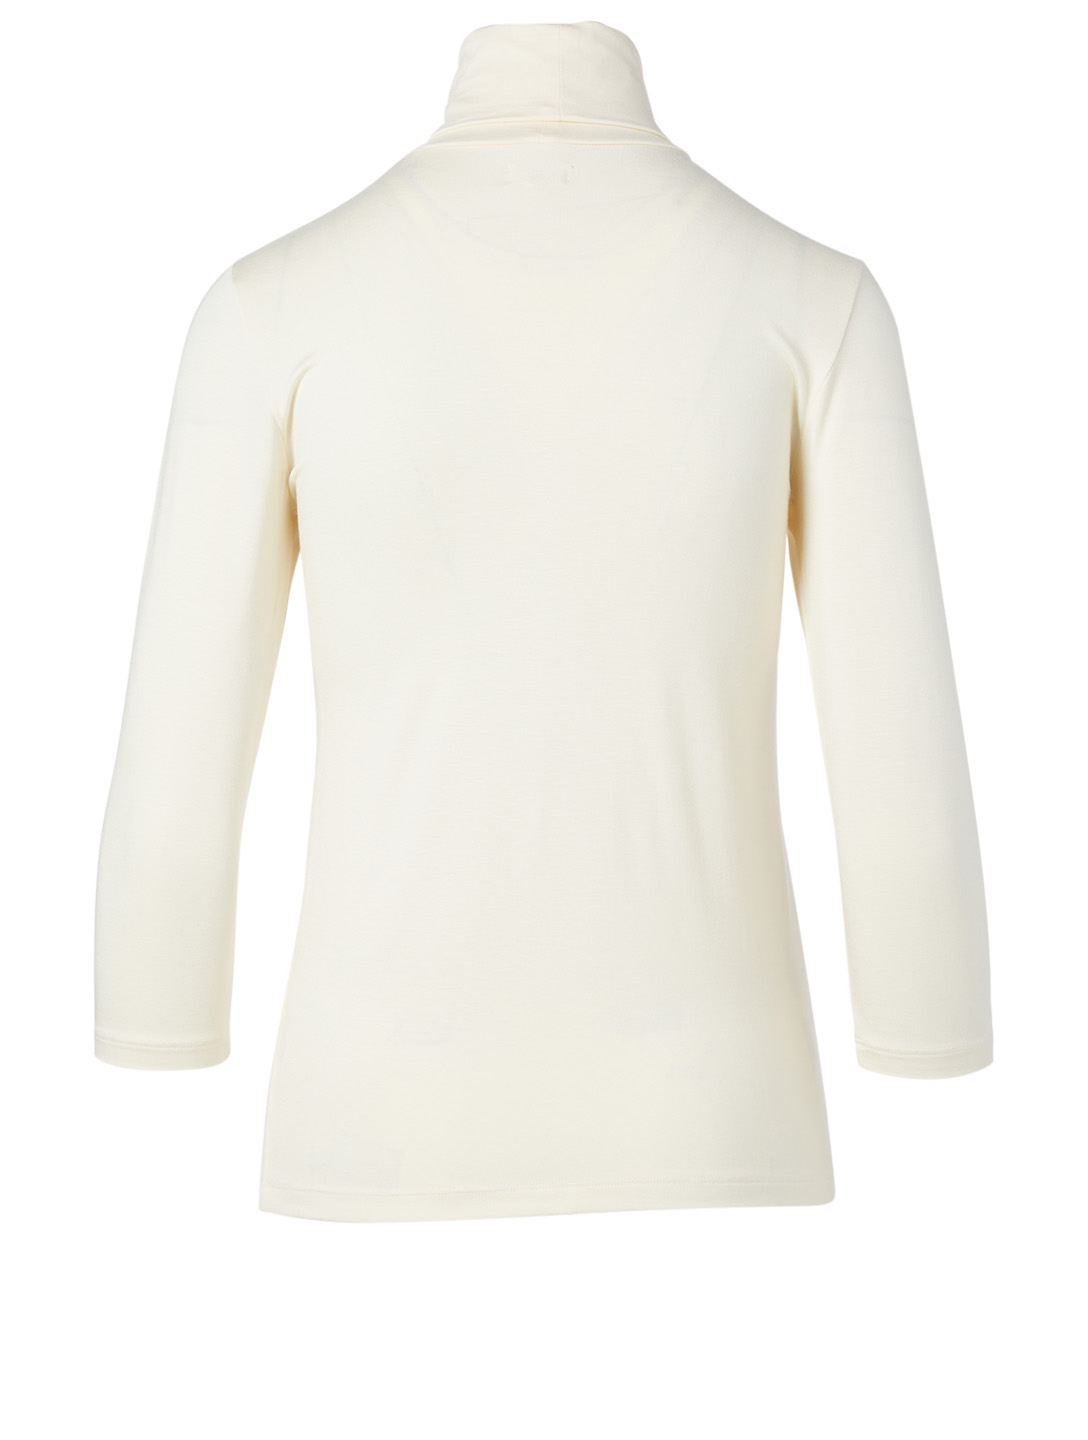 L'AGENCE Aja Turtleneck Top Women's White